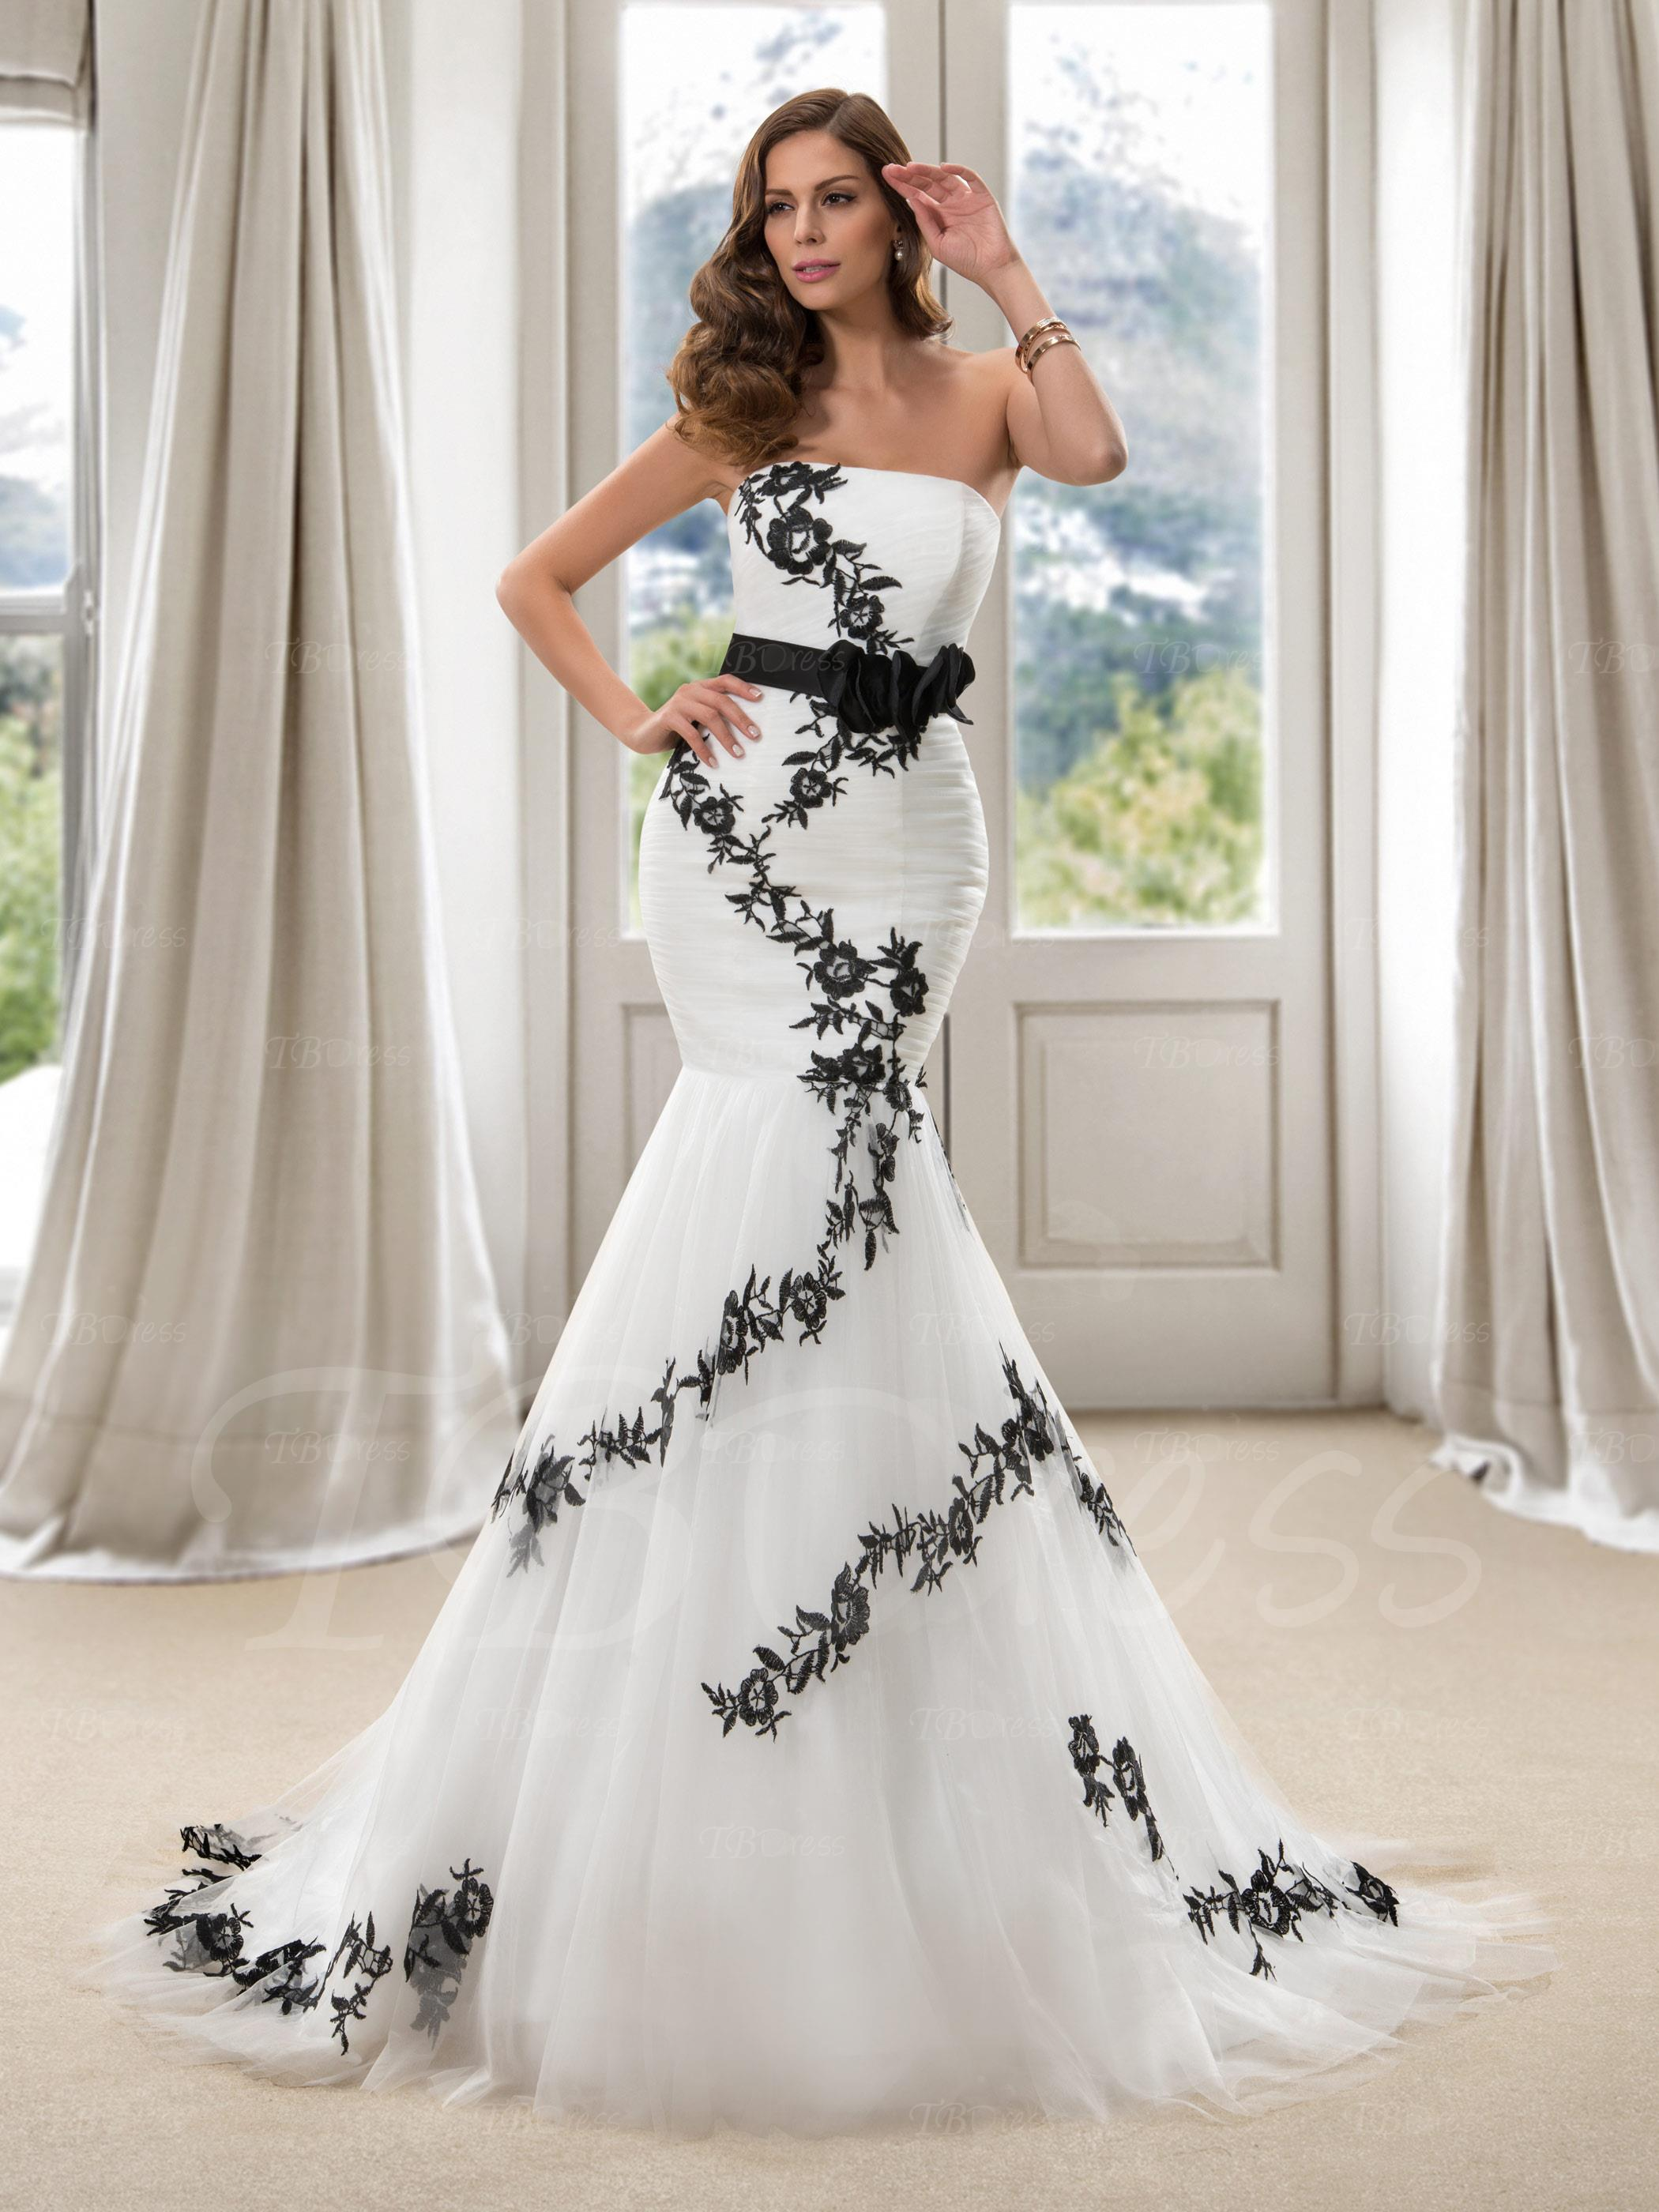 30 ideas of beautiful black and white wedding dresses for Black mermaid wedding dresses